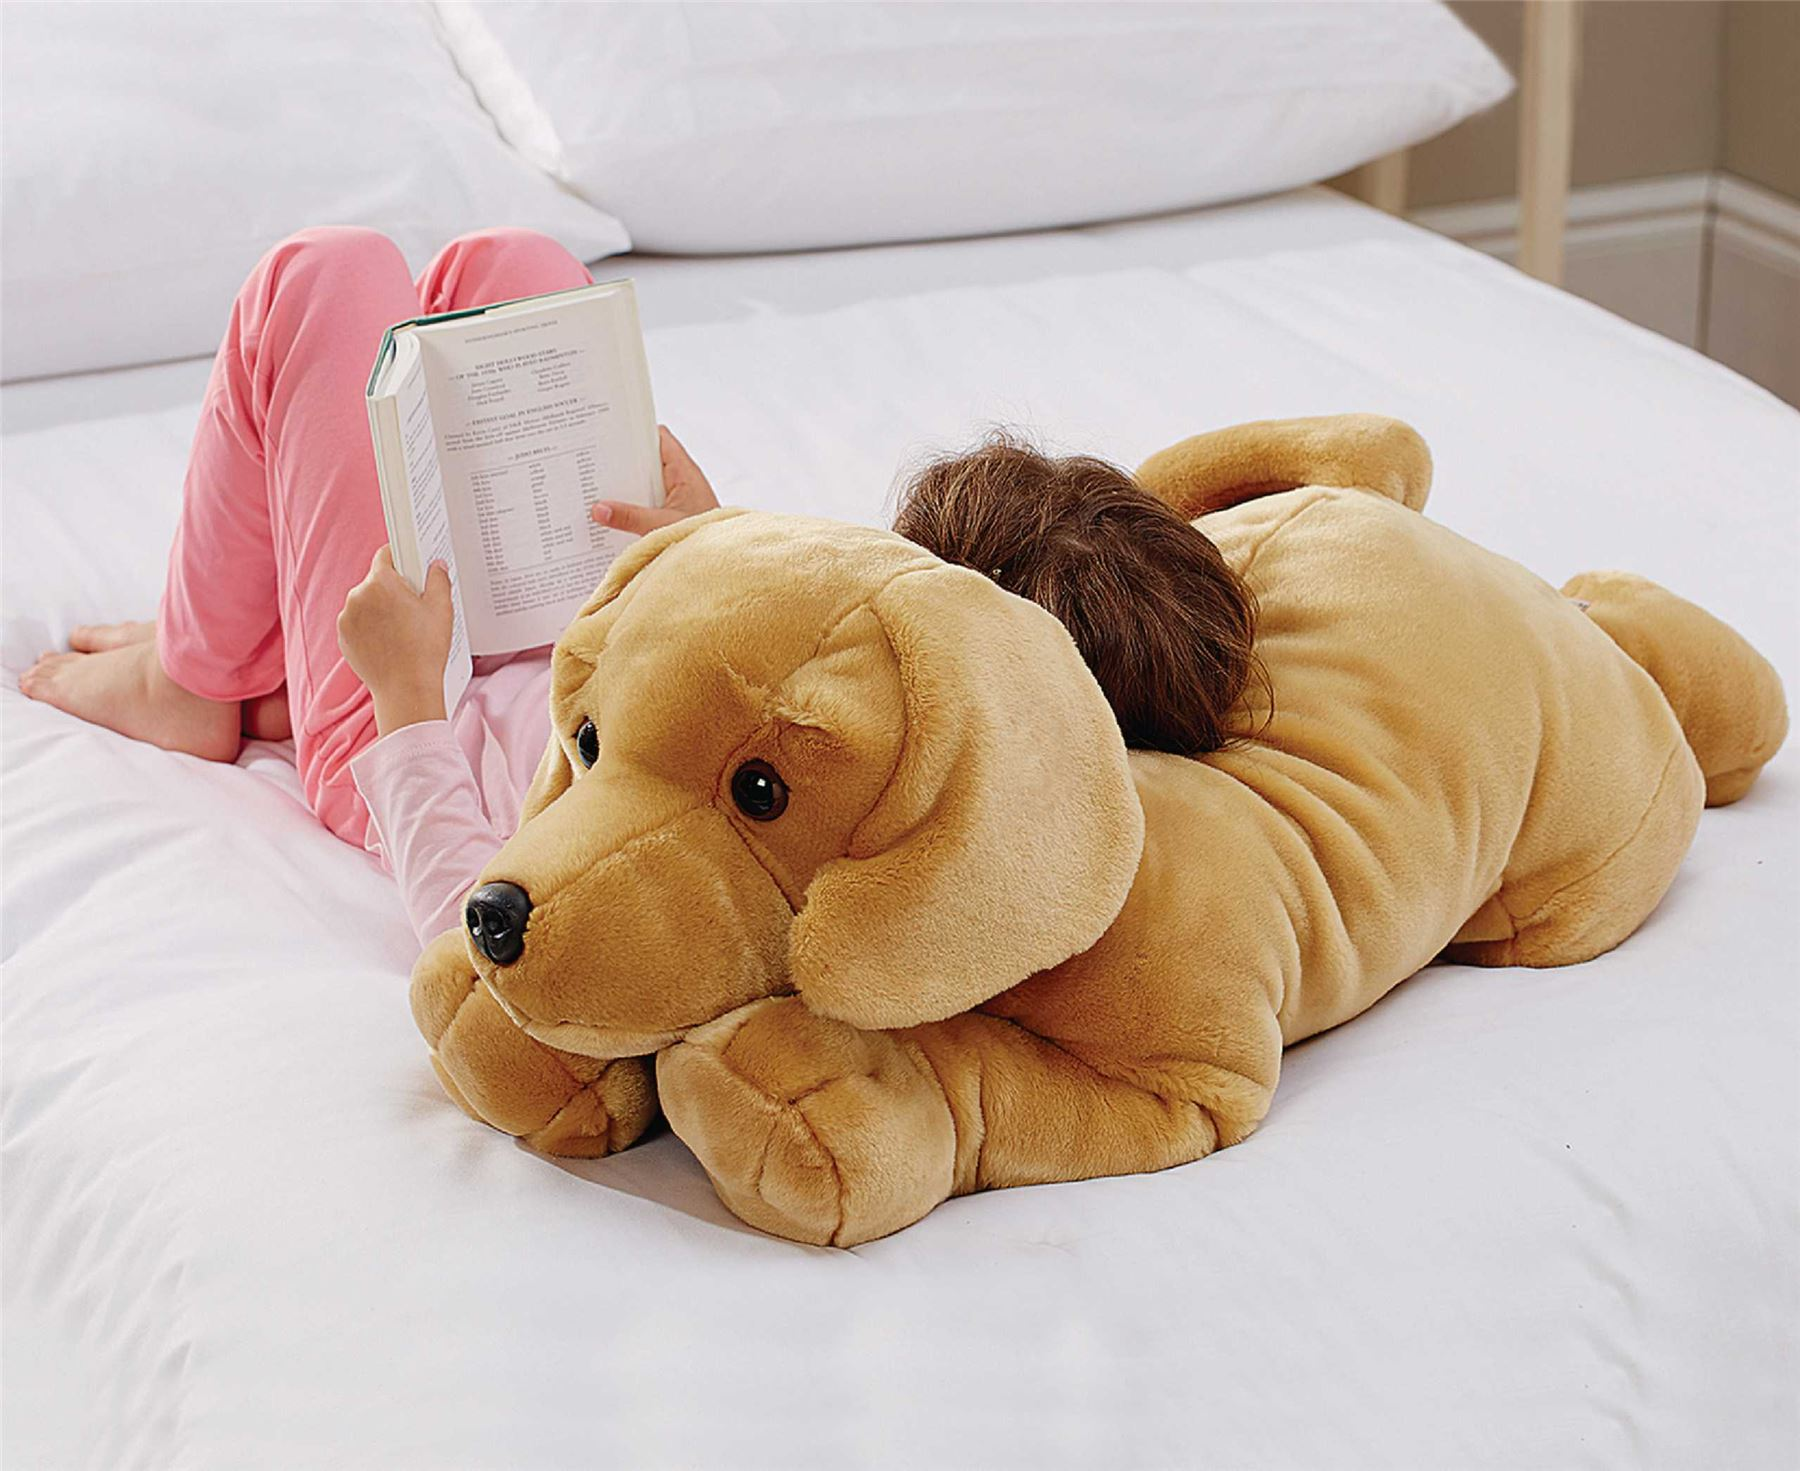 Dog Body Pillow Acrylic Plush Soft Kids Children Toy Bedroom ...